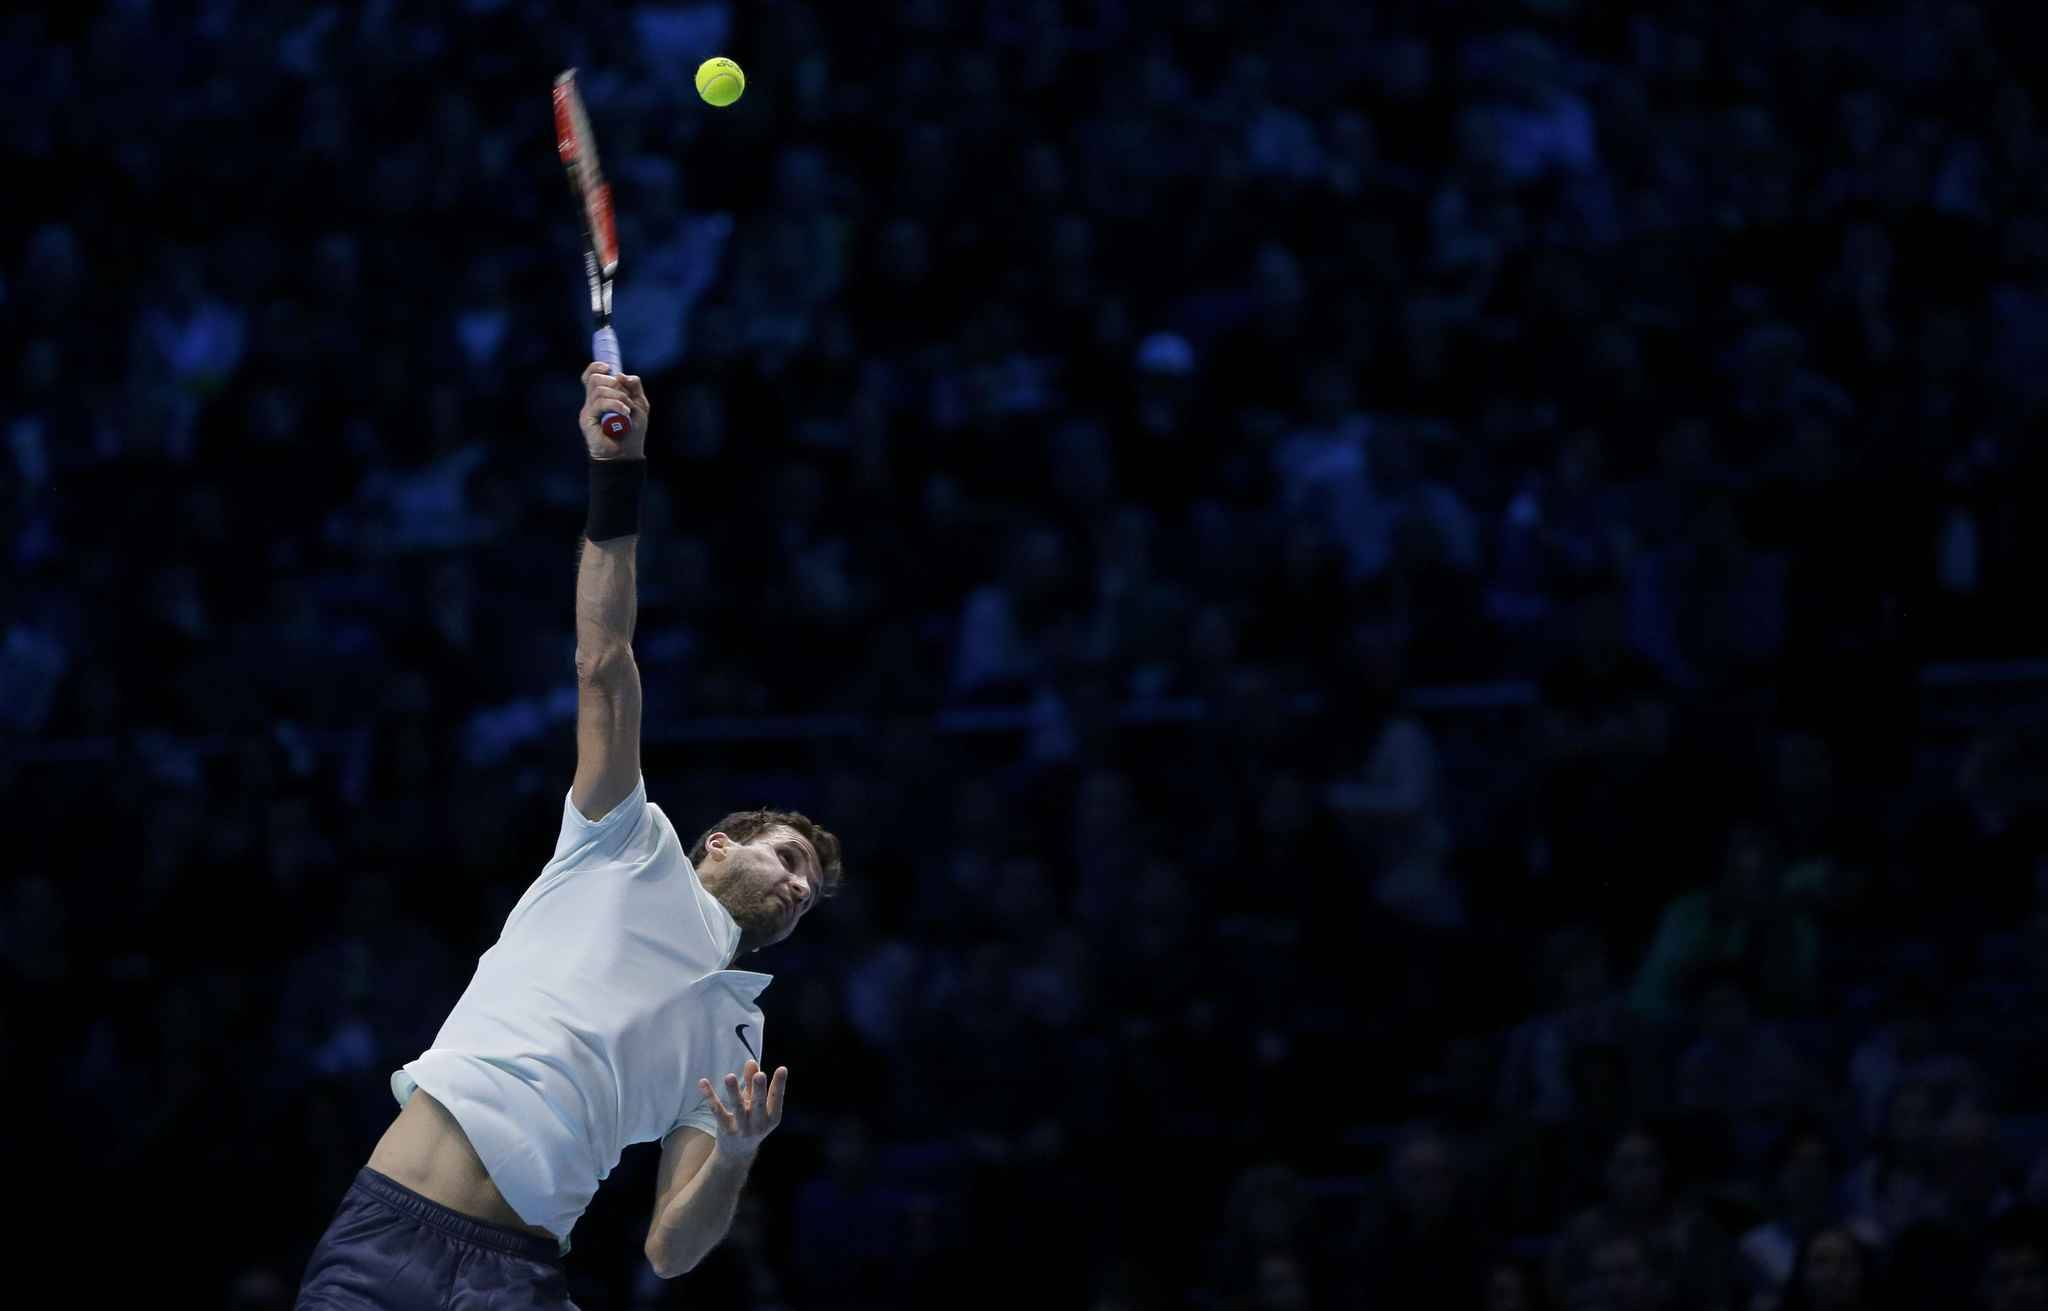 Grigor Dimitrov of Bulgaria serves to David Goffin of Belgium during their ATP World Tour Finals singles final tennis match at the O2 Arena in London, Sunday Nov. 19, 2017.